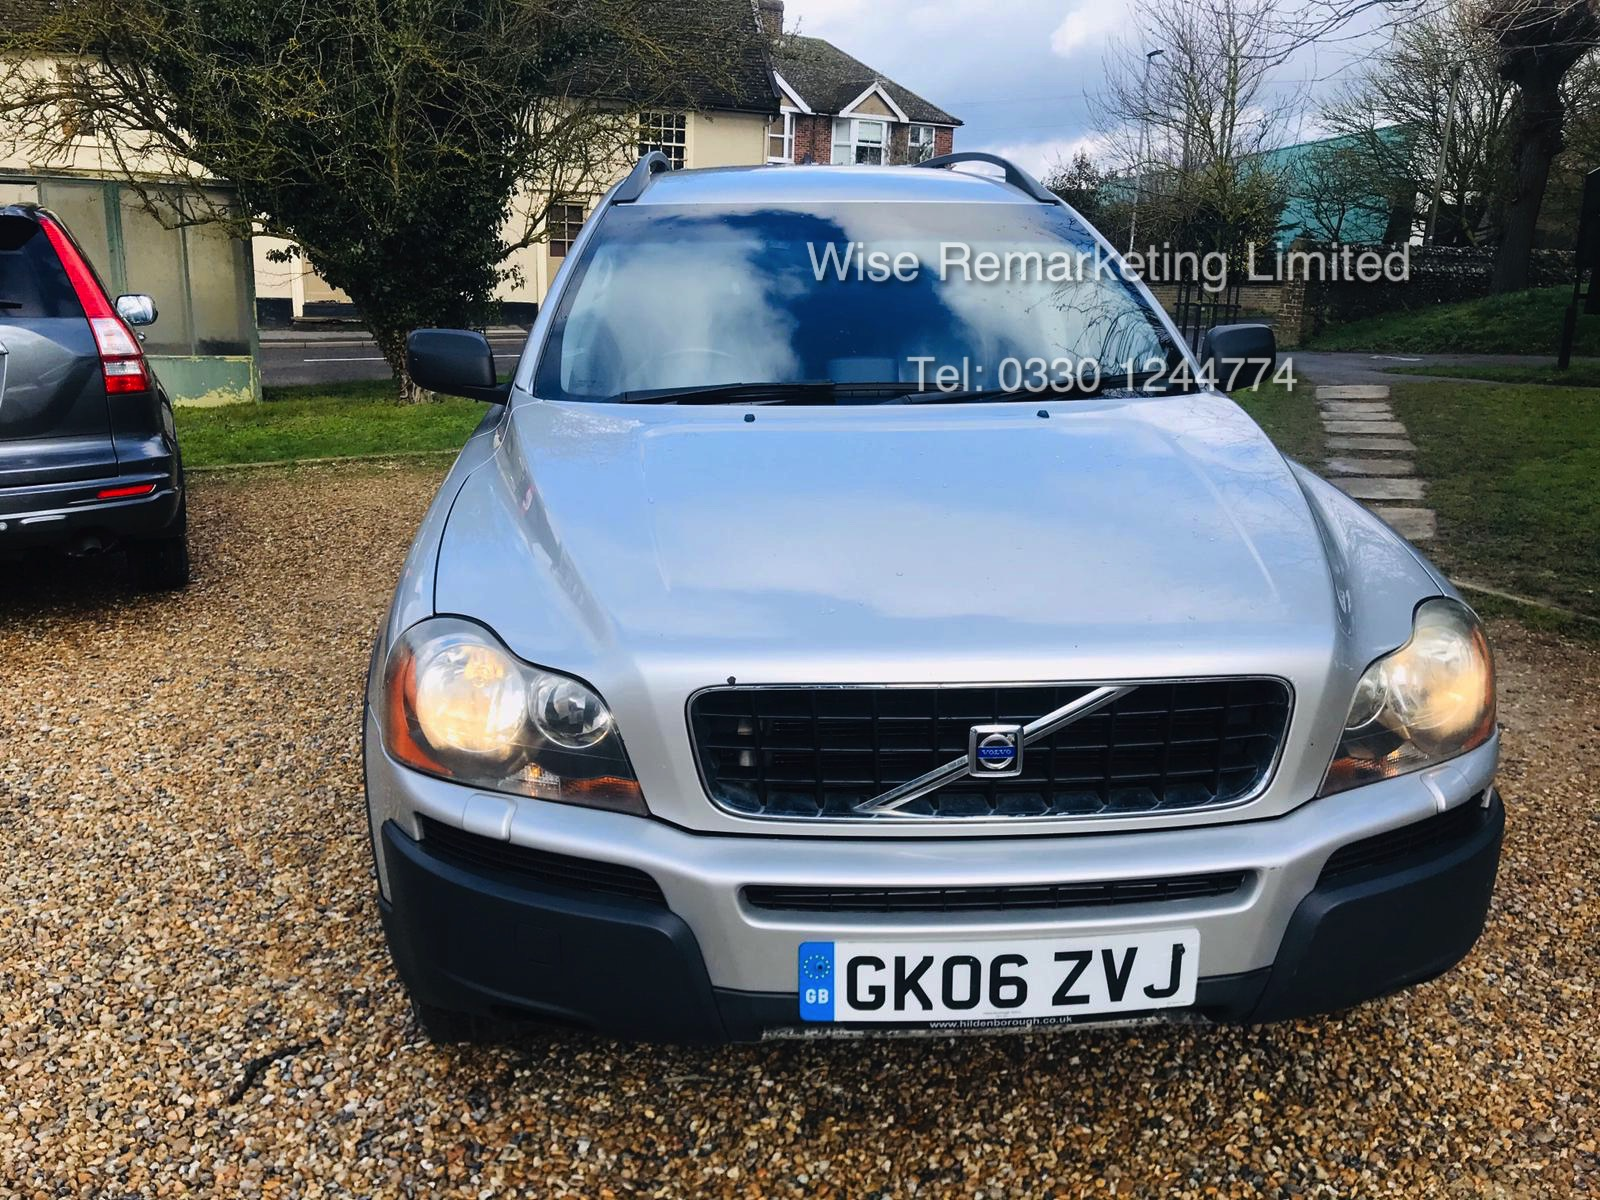 Volvo XC90 2.4 D5 Special Equipment Geartronic - 2006 06 Reg - Service History - 7 Seats - Sat Nav - Image 4 of 27